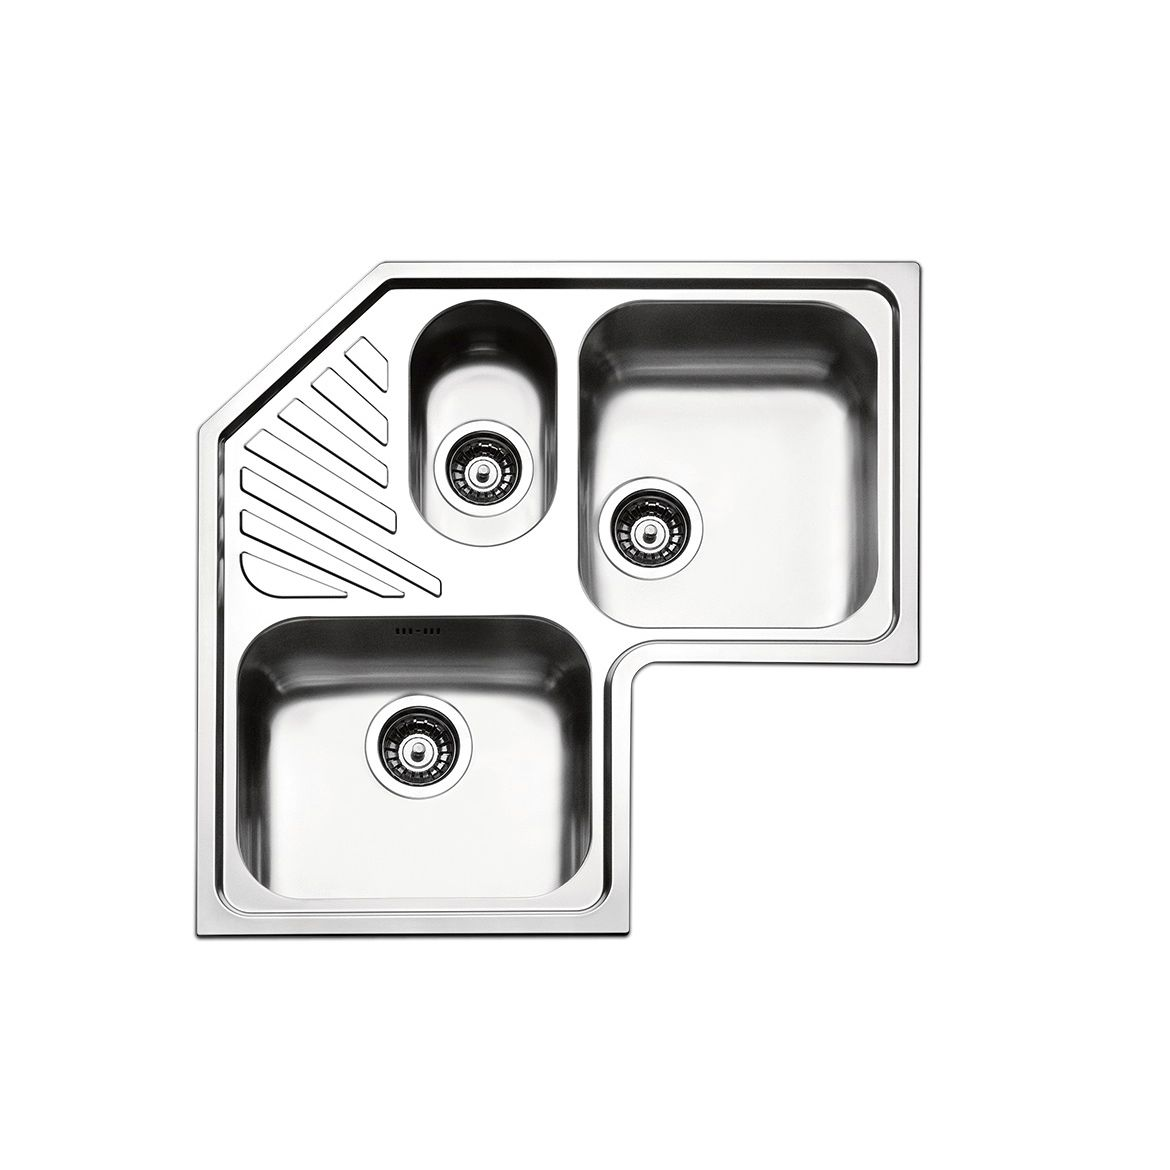 Triple Bowl Kitchen Sink / Stainless Steel / Corner / With Drainboard    ANGOLO : ROAN3I